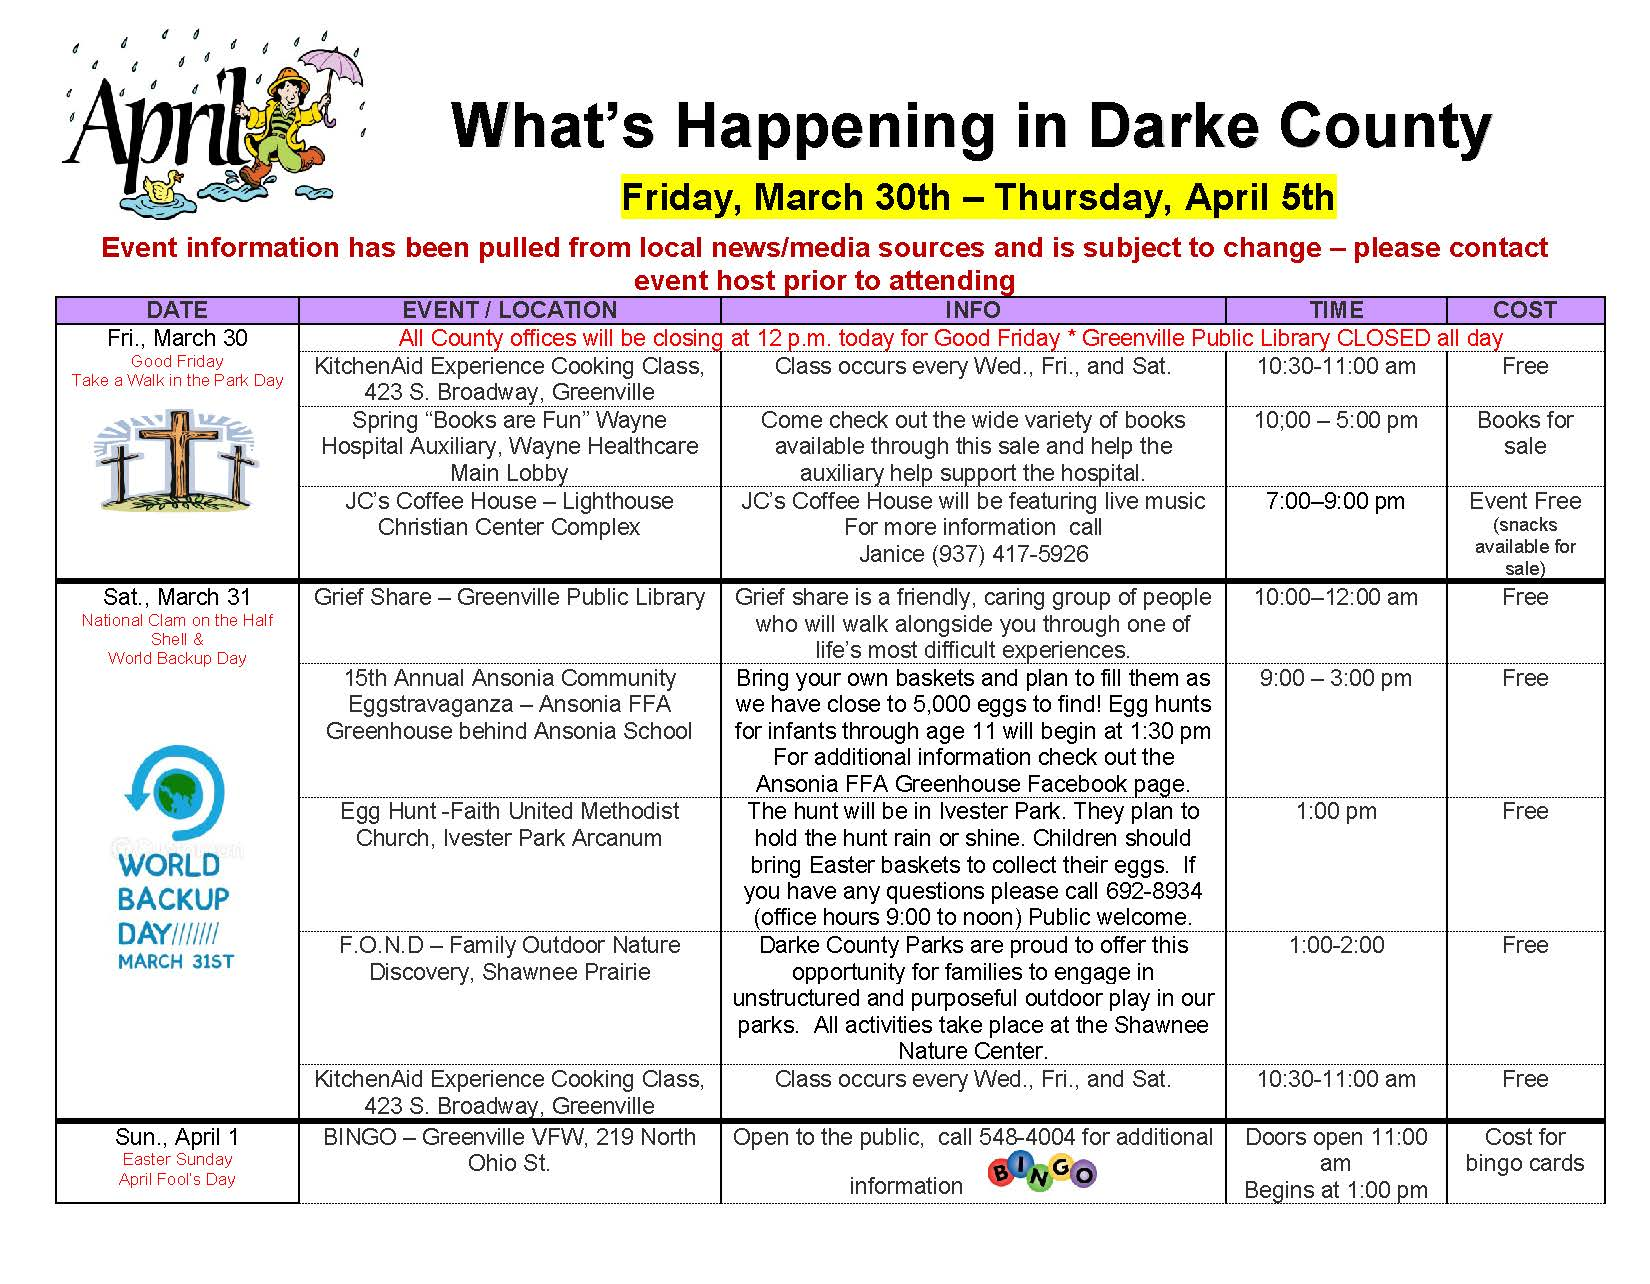 What's Happening in Darke County – March 30th through April 5th